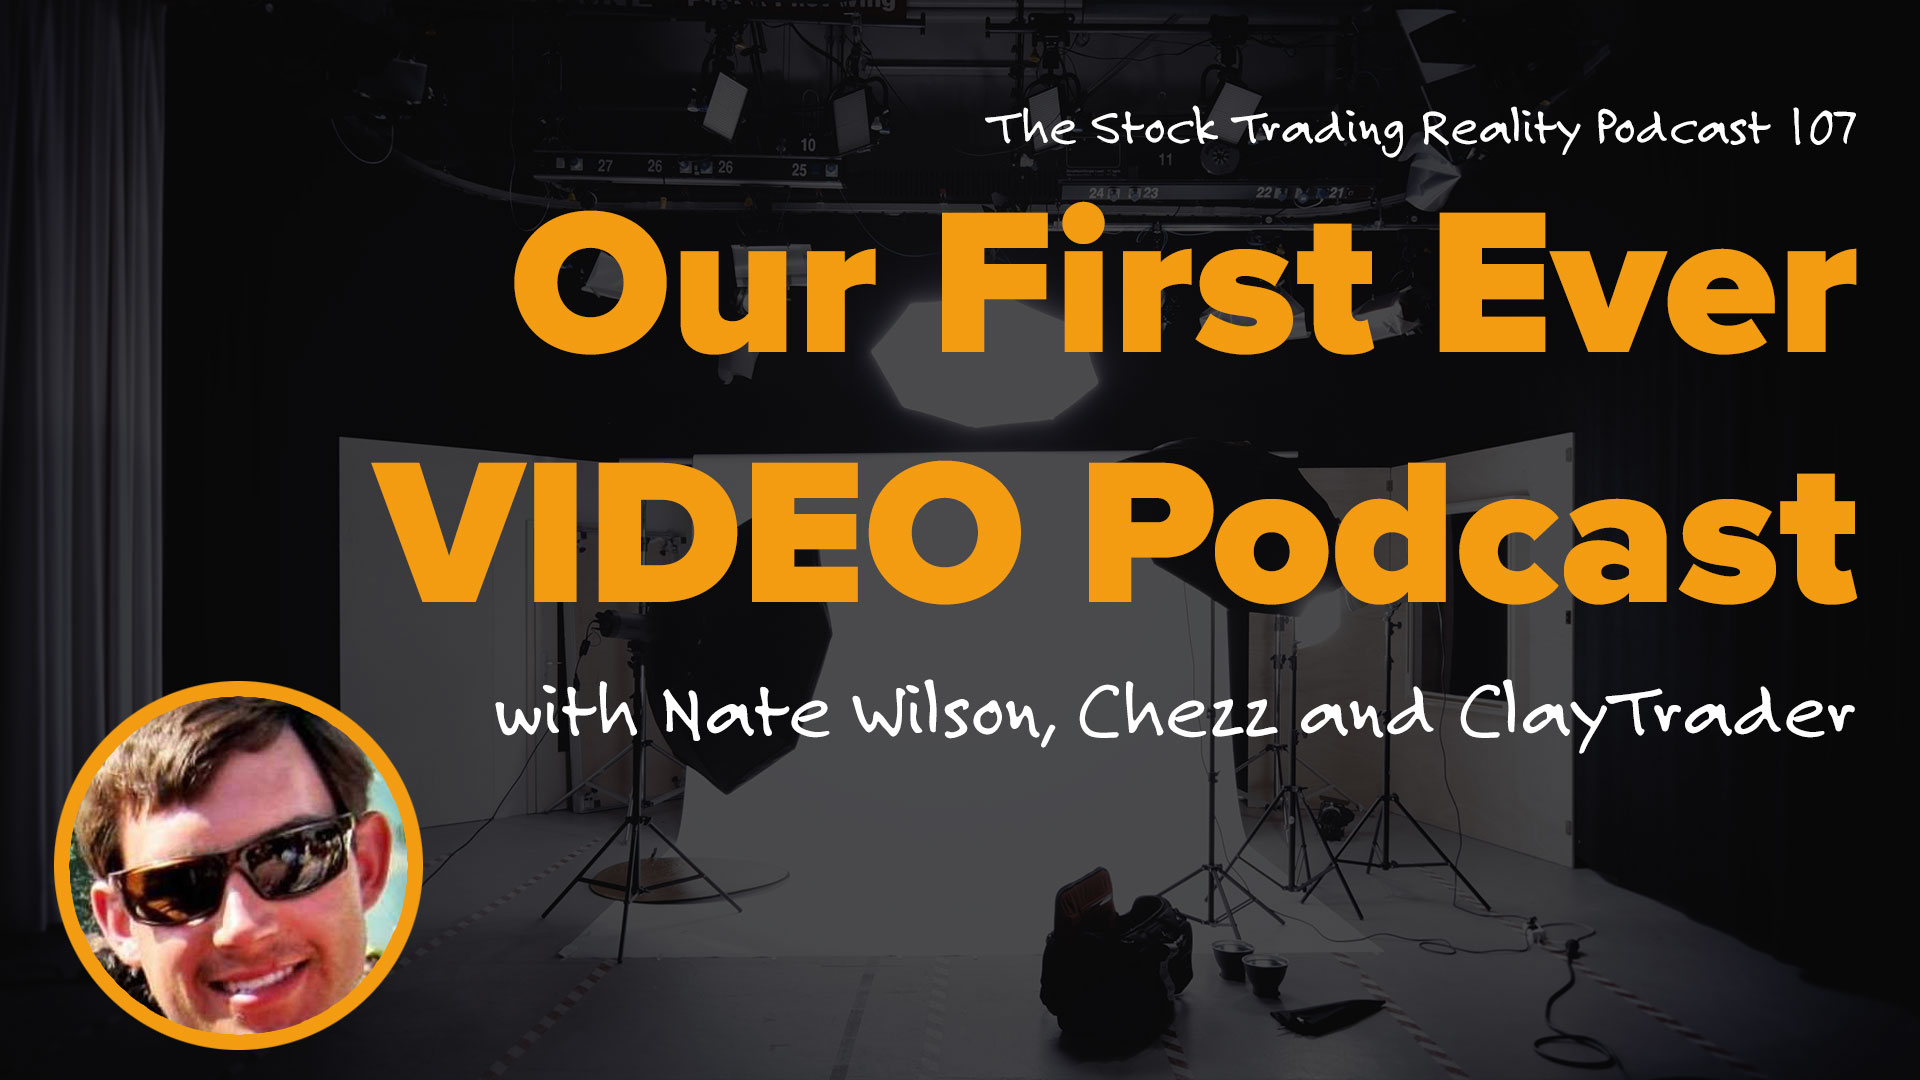 STR 107: Our First Ever VIDEO Podcast with Nate Wilson!